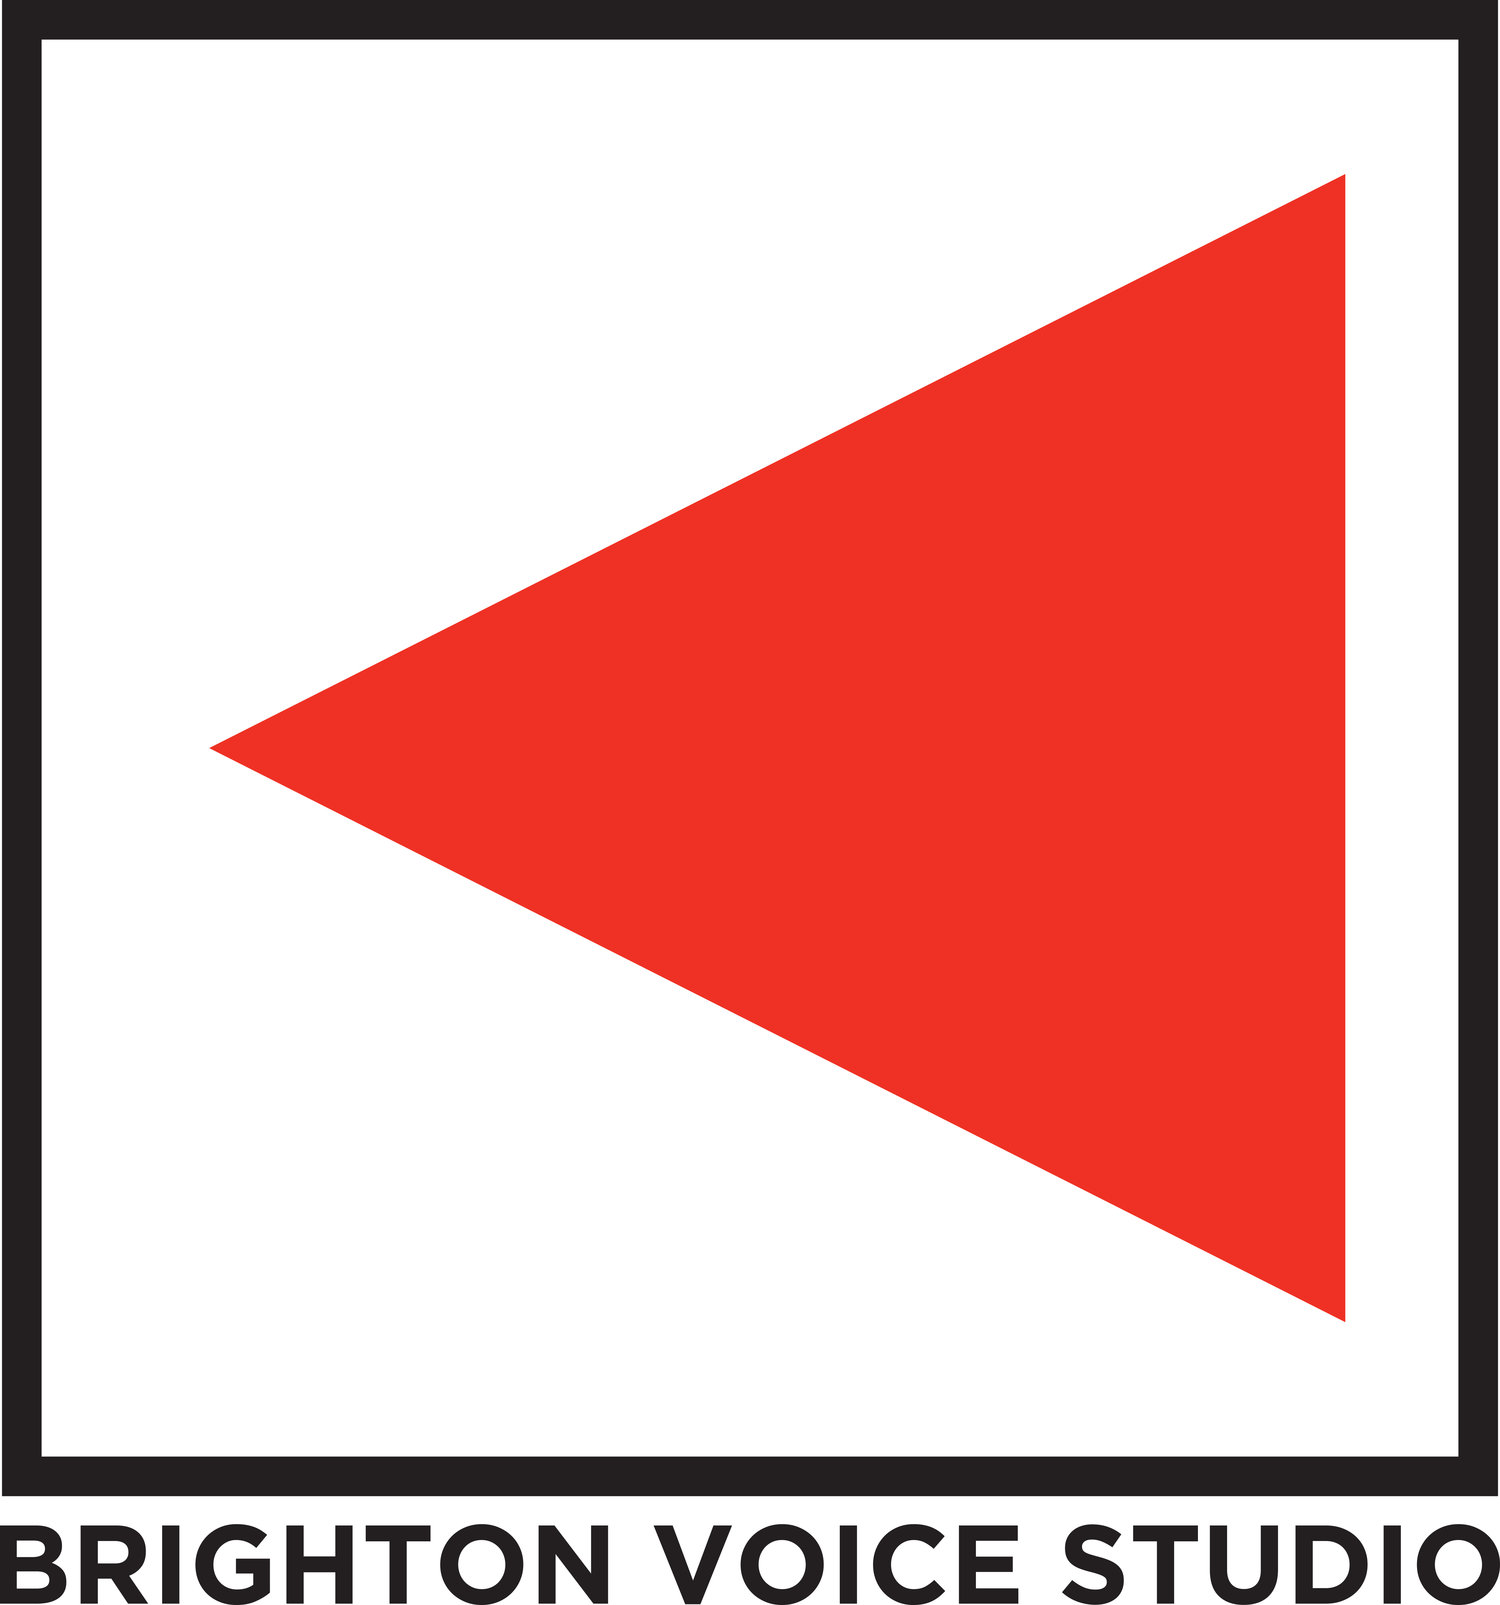 Brighton Voice Studio